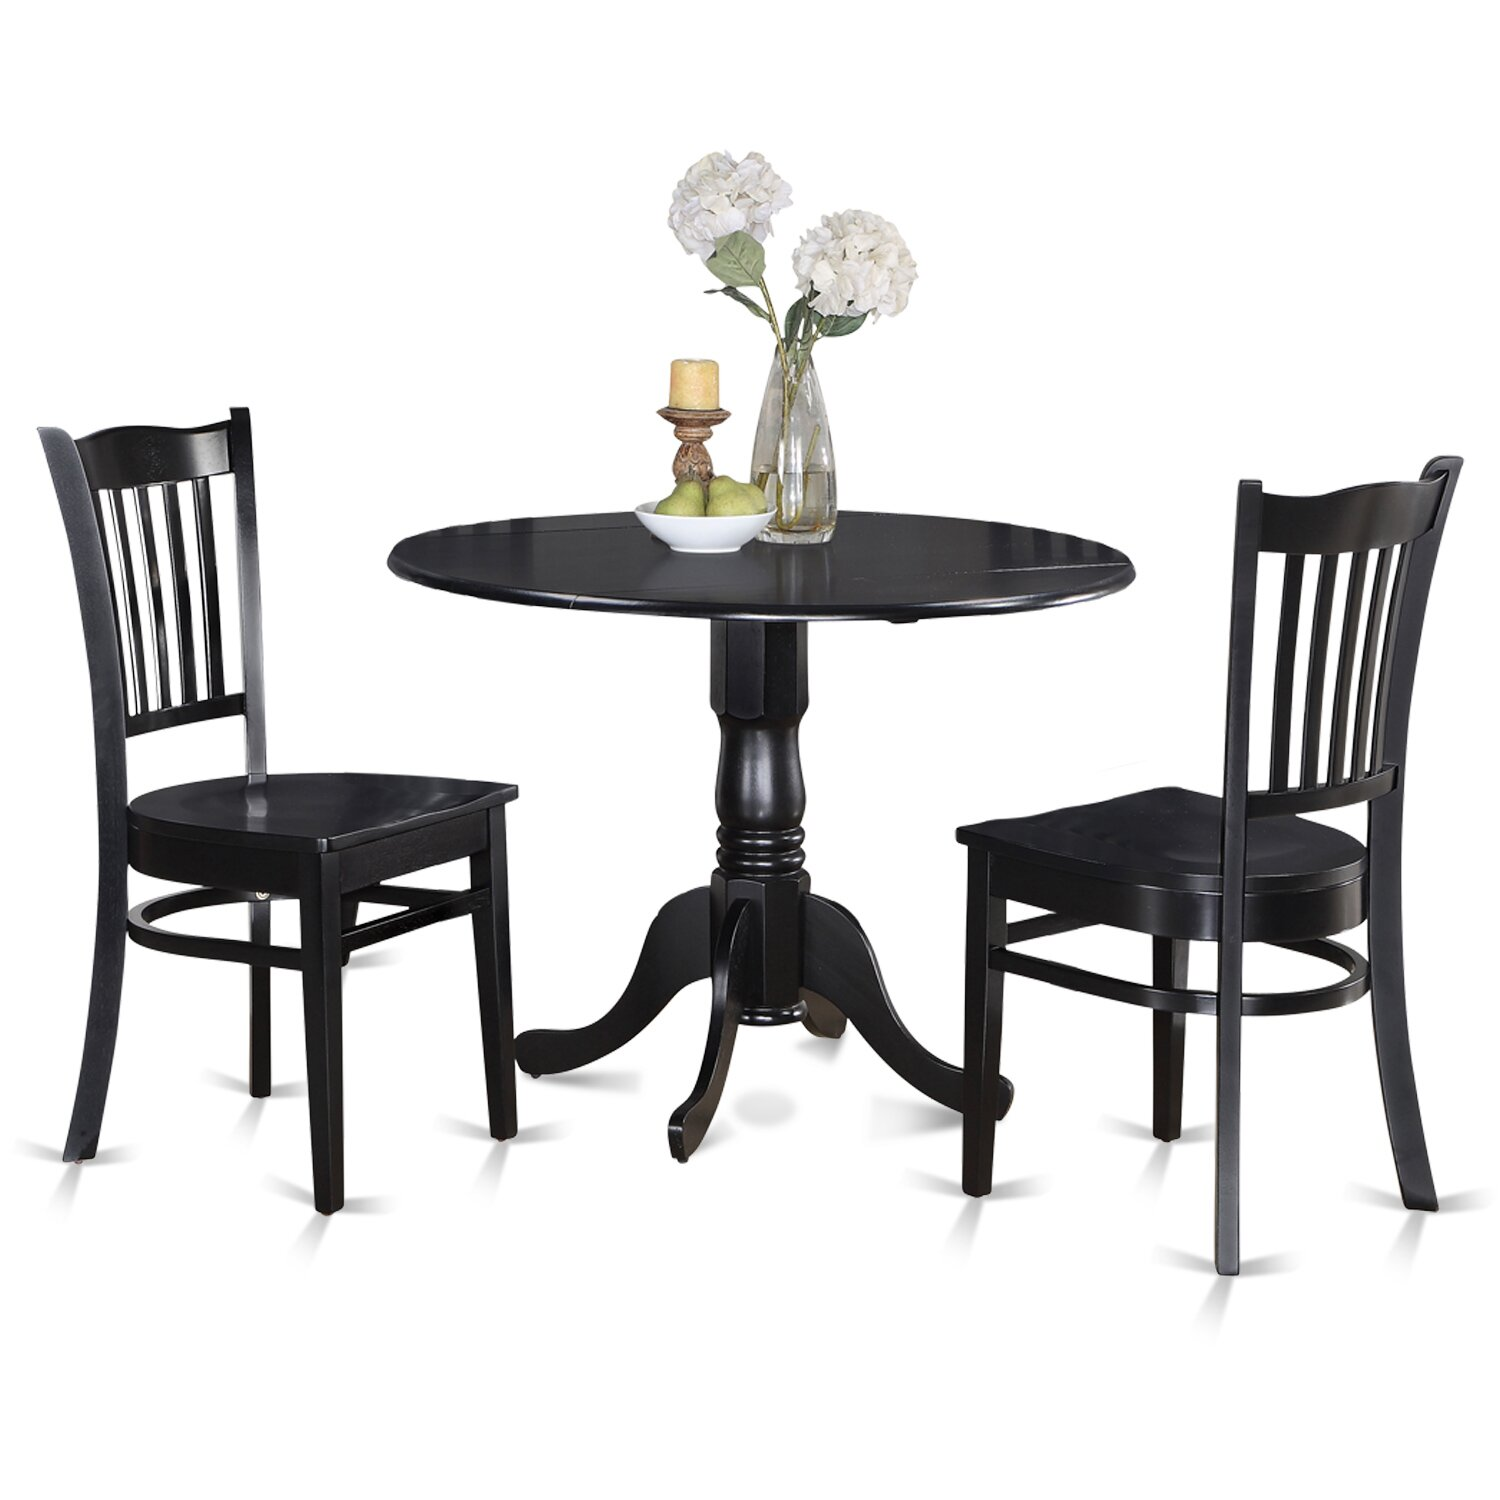 Wooden importers dublin 3 piece dining set reviews wayfair for Small kitchen tables for two